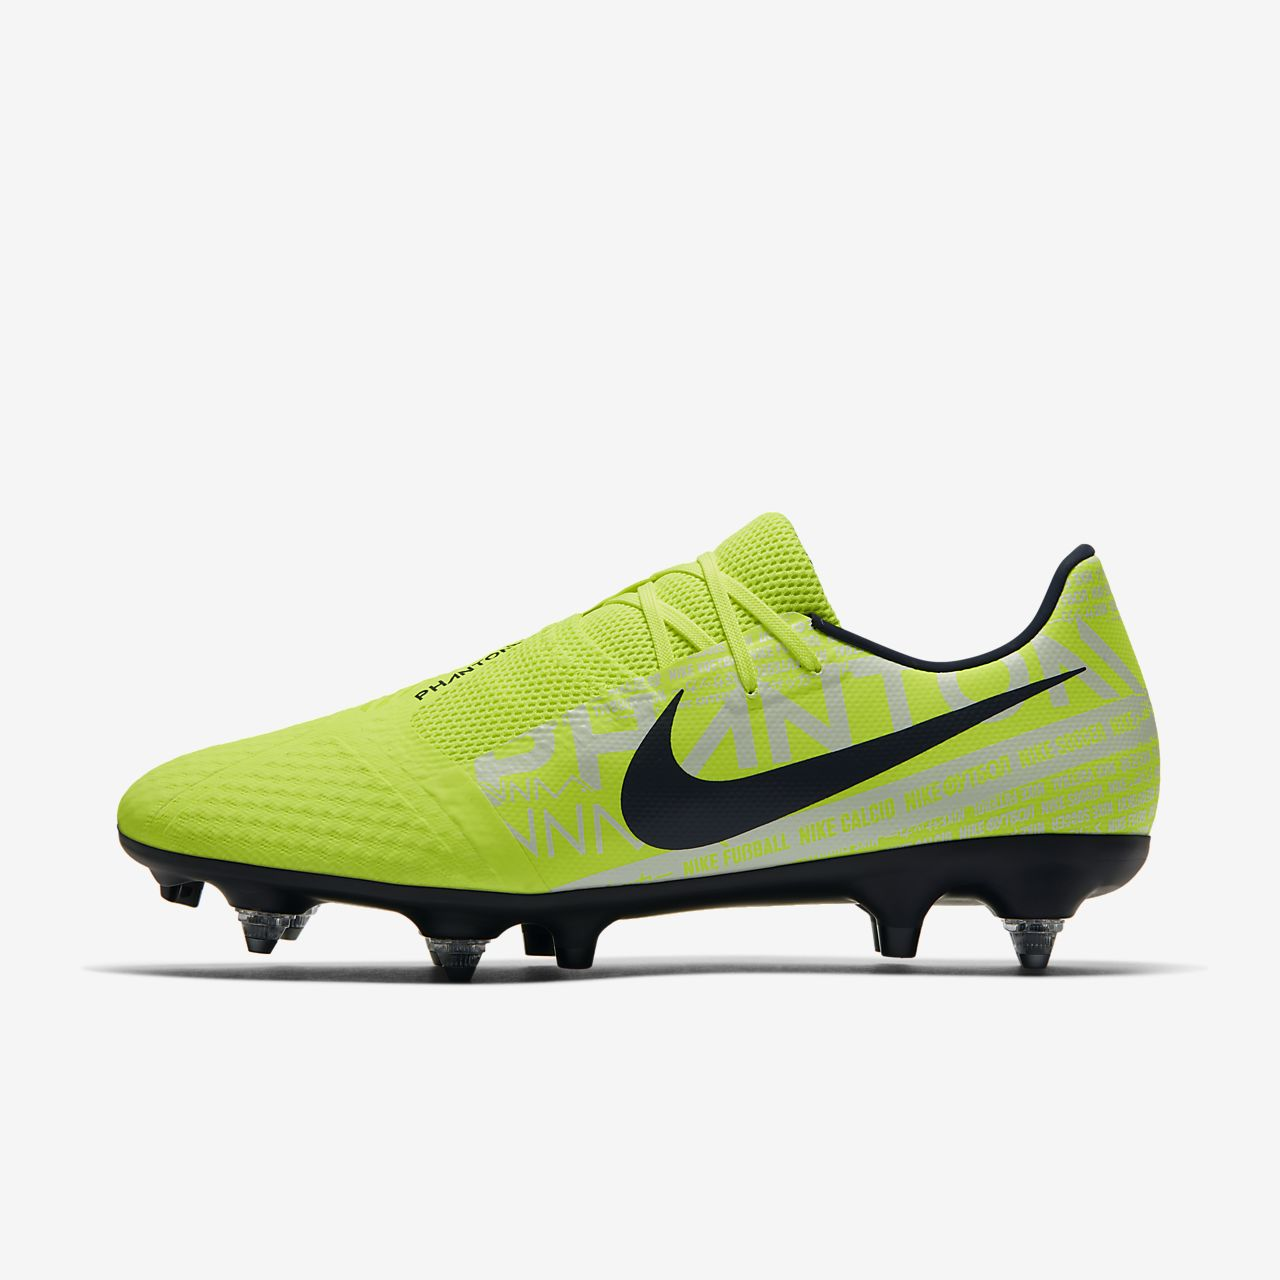 Nike PhantomVNM Academy SG-Pro Anti-Clog Traction Soft-Ground Football Boot